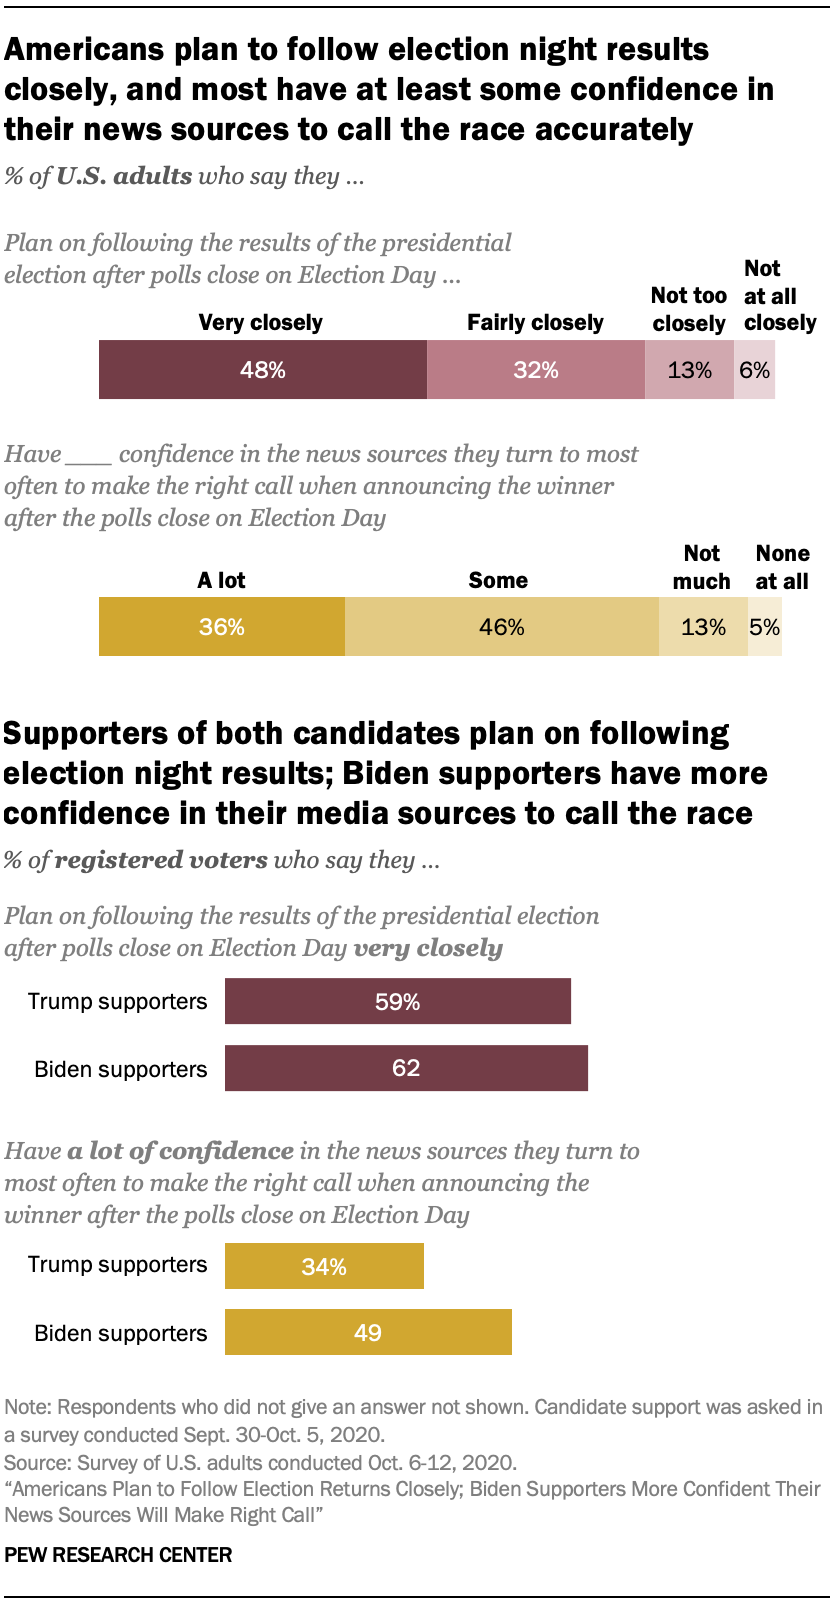 Americans plan to follow election night results closely, and most have at least some confidence in their news sources to call the race accurately